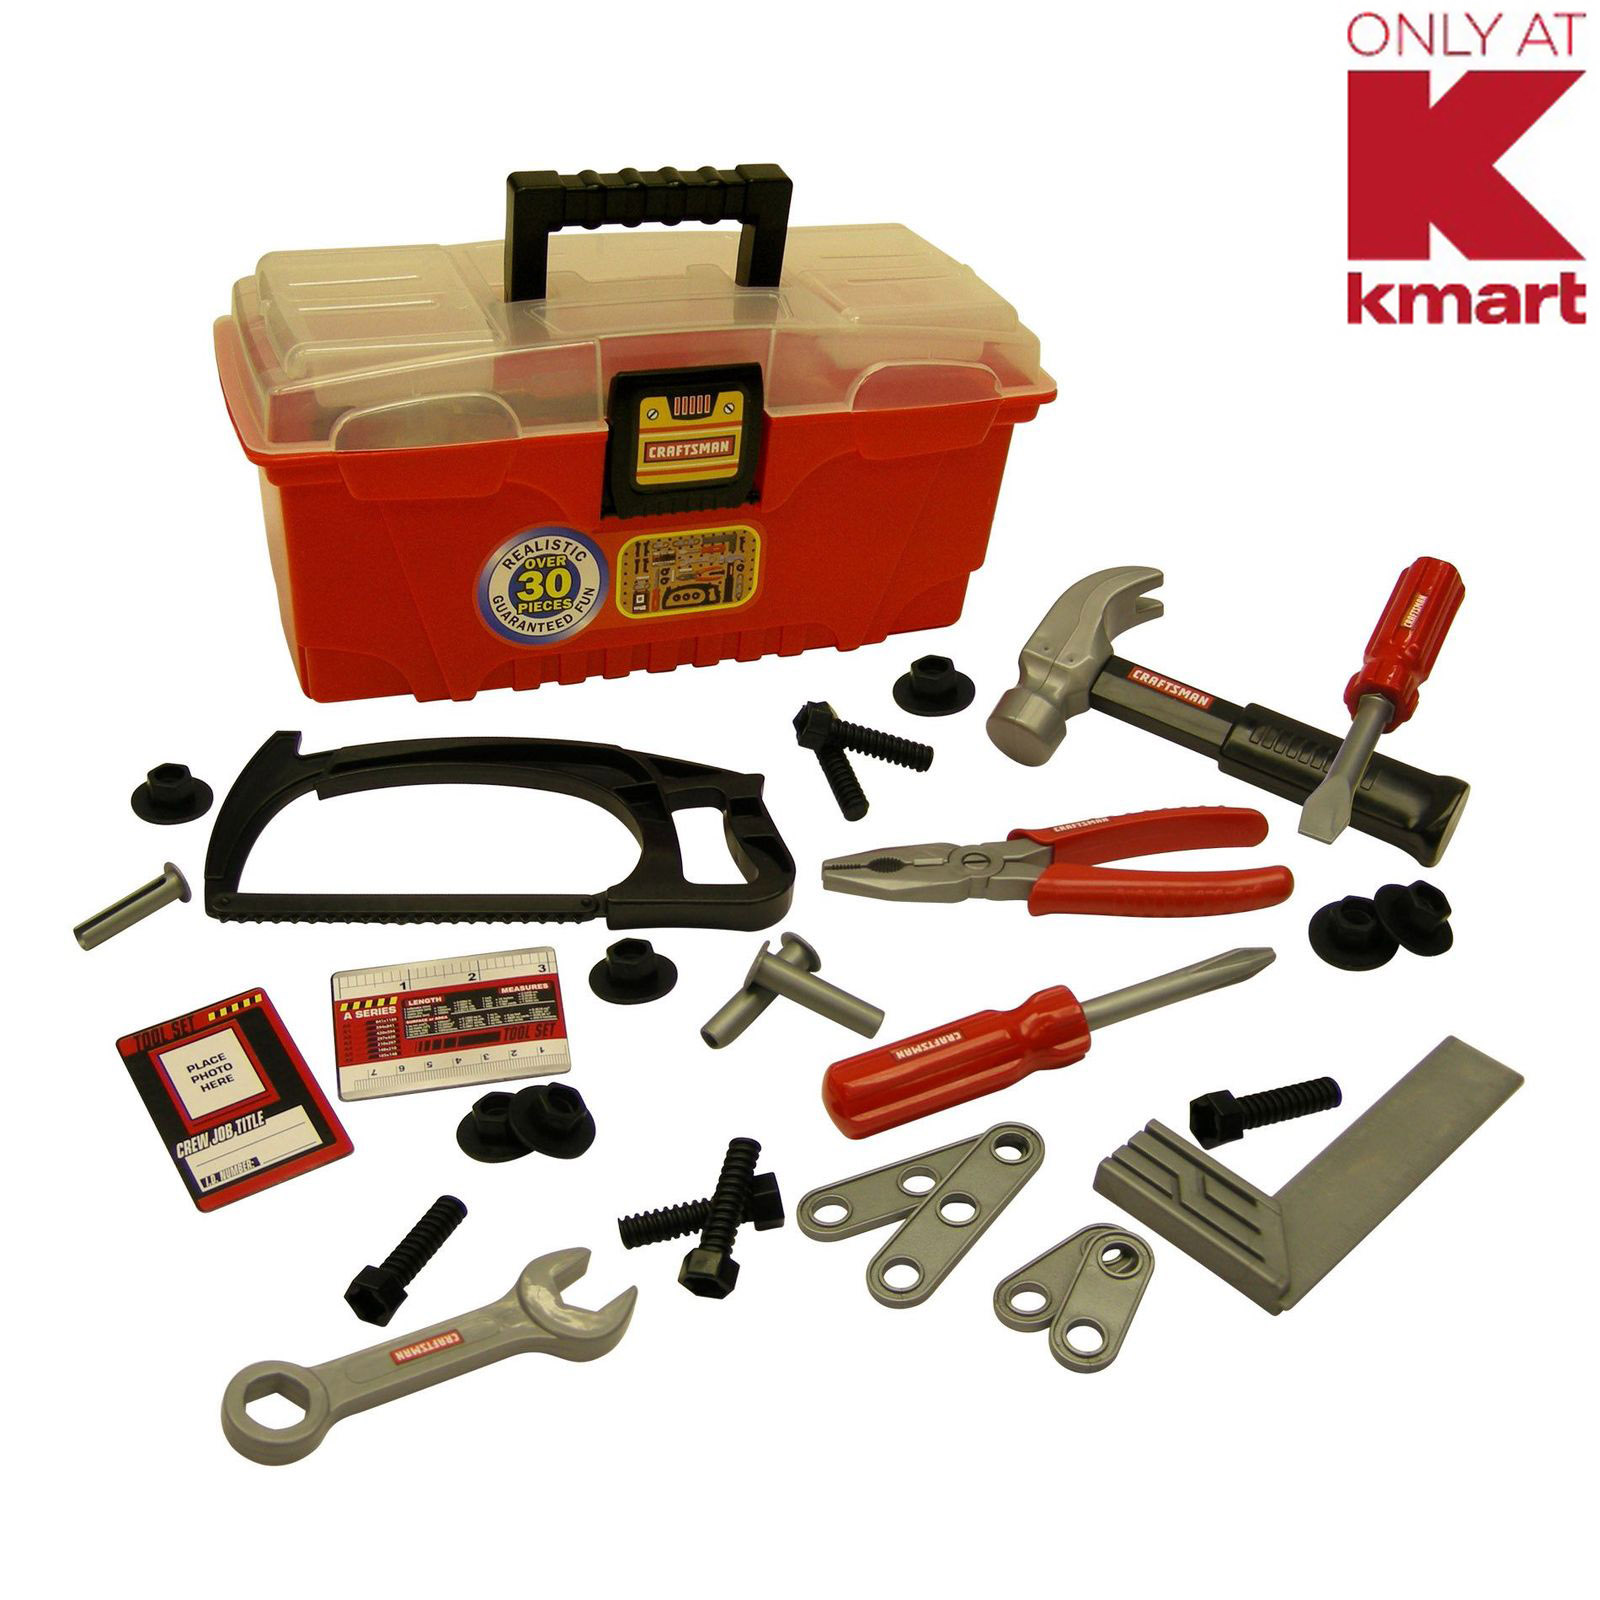 30 pcs Tool Box Set